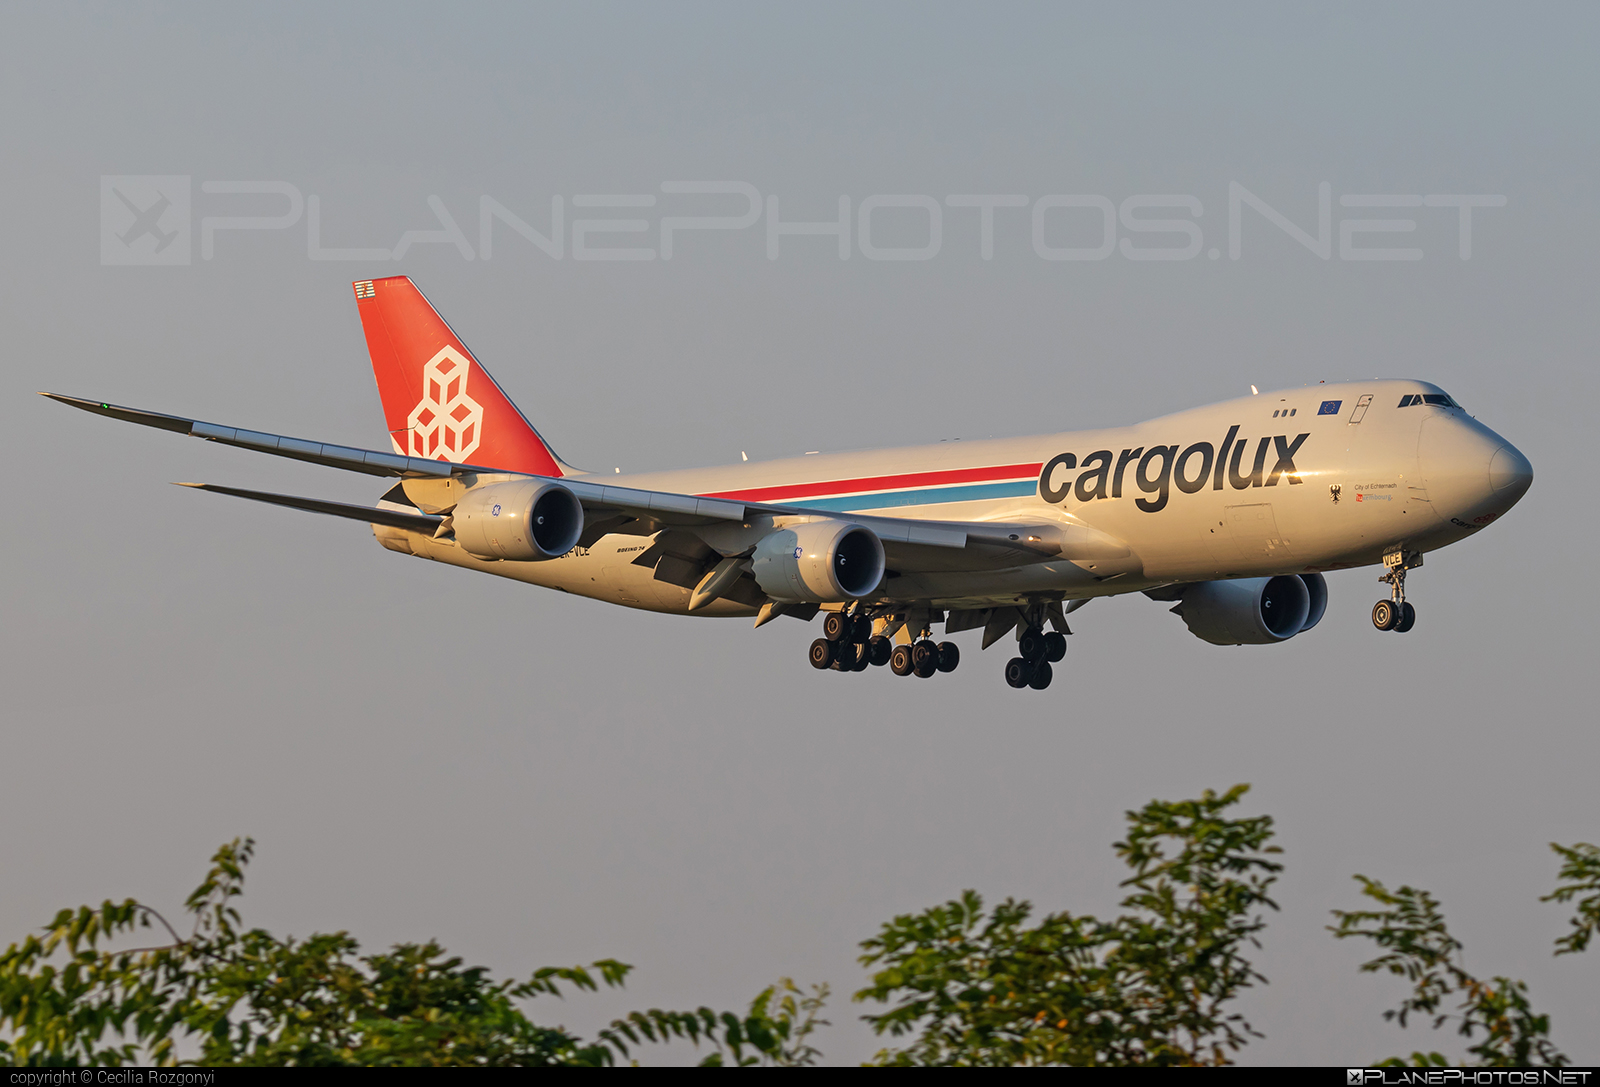 Boeing 747-8F - LX-VCE operated by Cargolux Airlines International #b747 #b747f #b747freighter #boeing #boeing747 #cargolux #jumbo